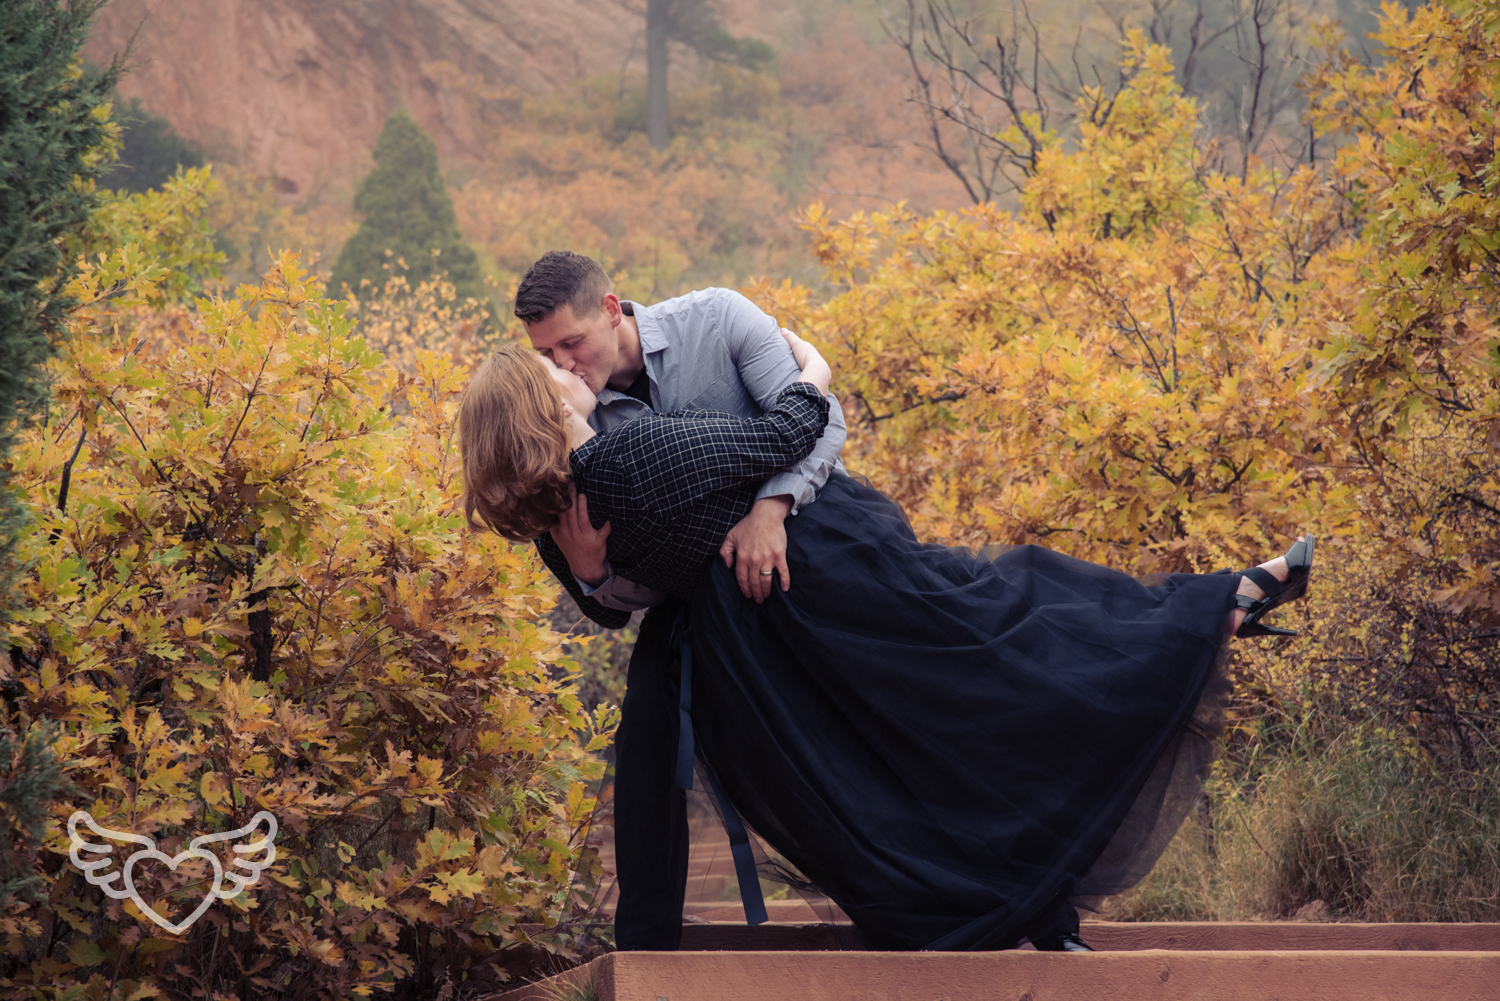 Couples_Photography_Gardenofthegods-51.jpg